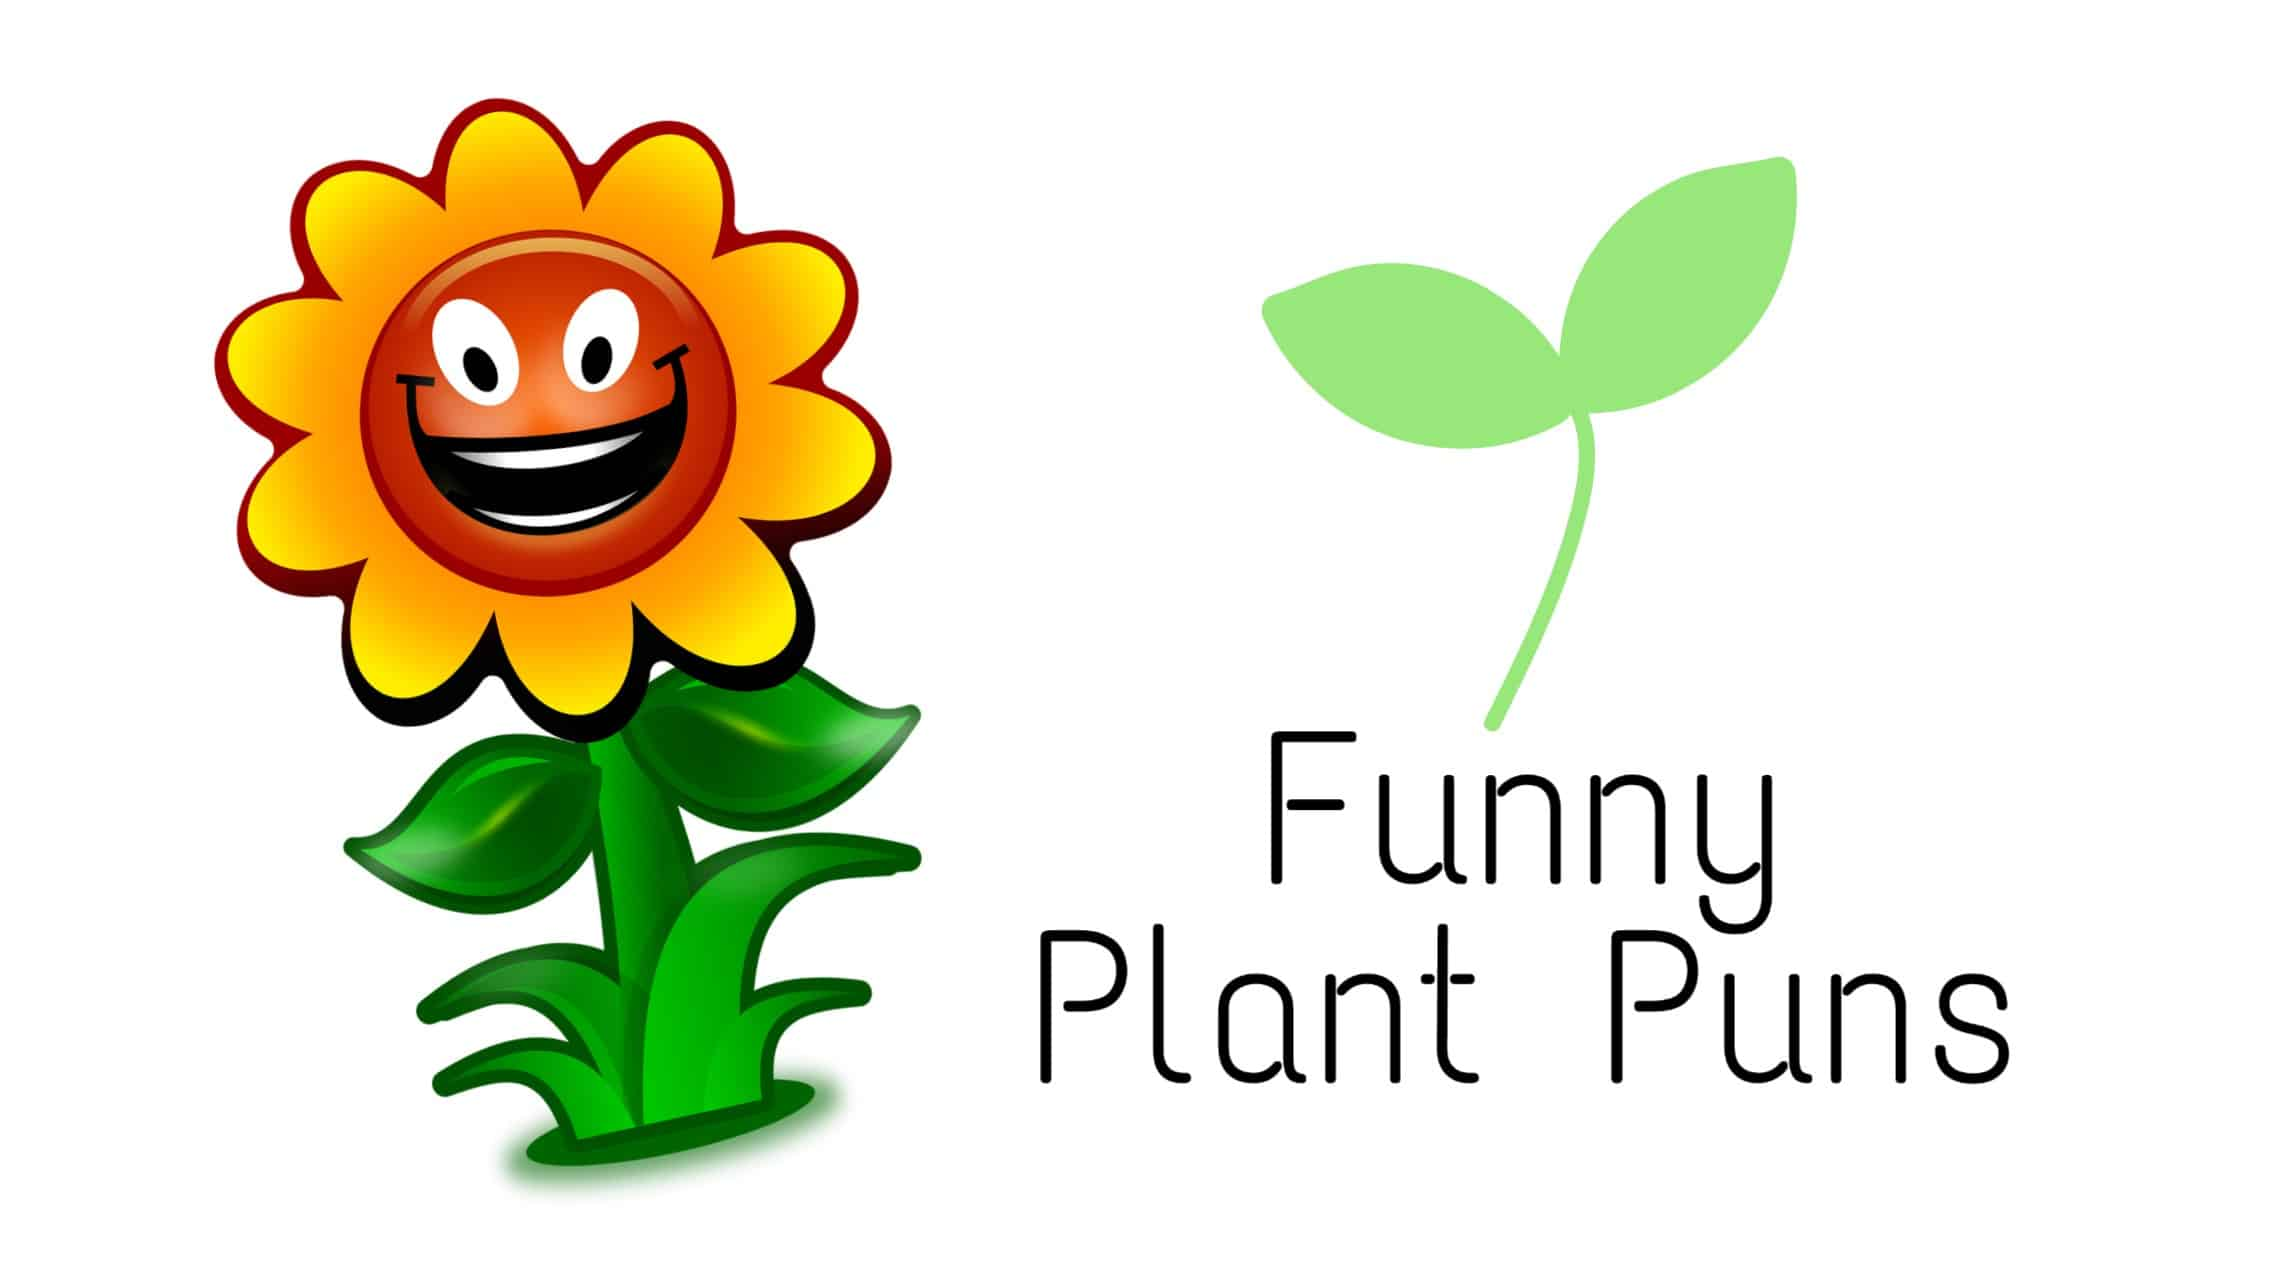 75 Hilarious Plant puns To Brighten Your Day